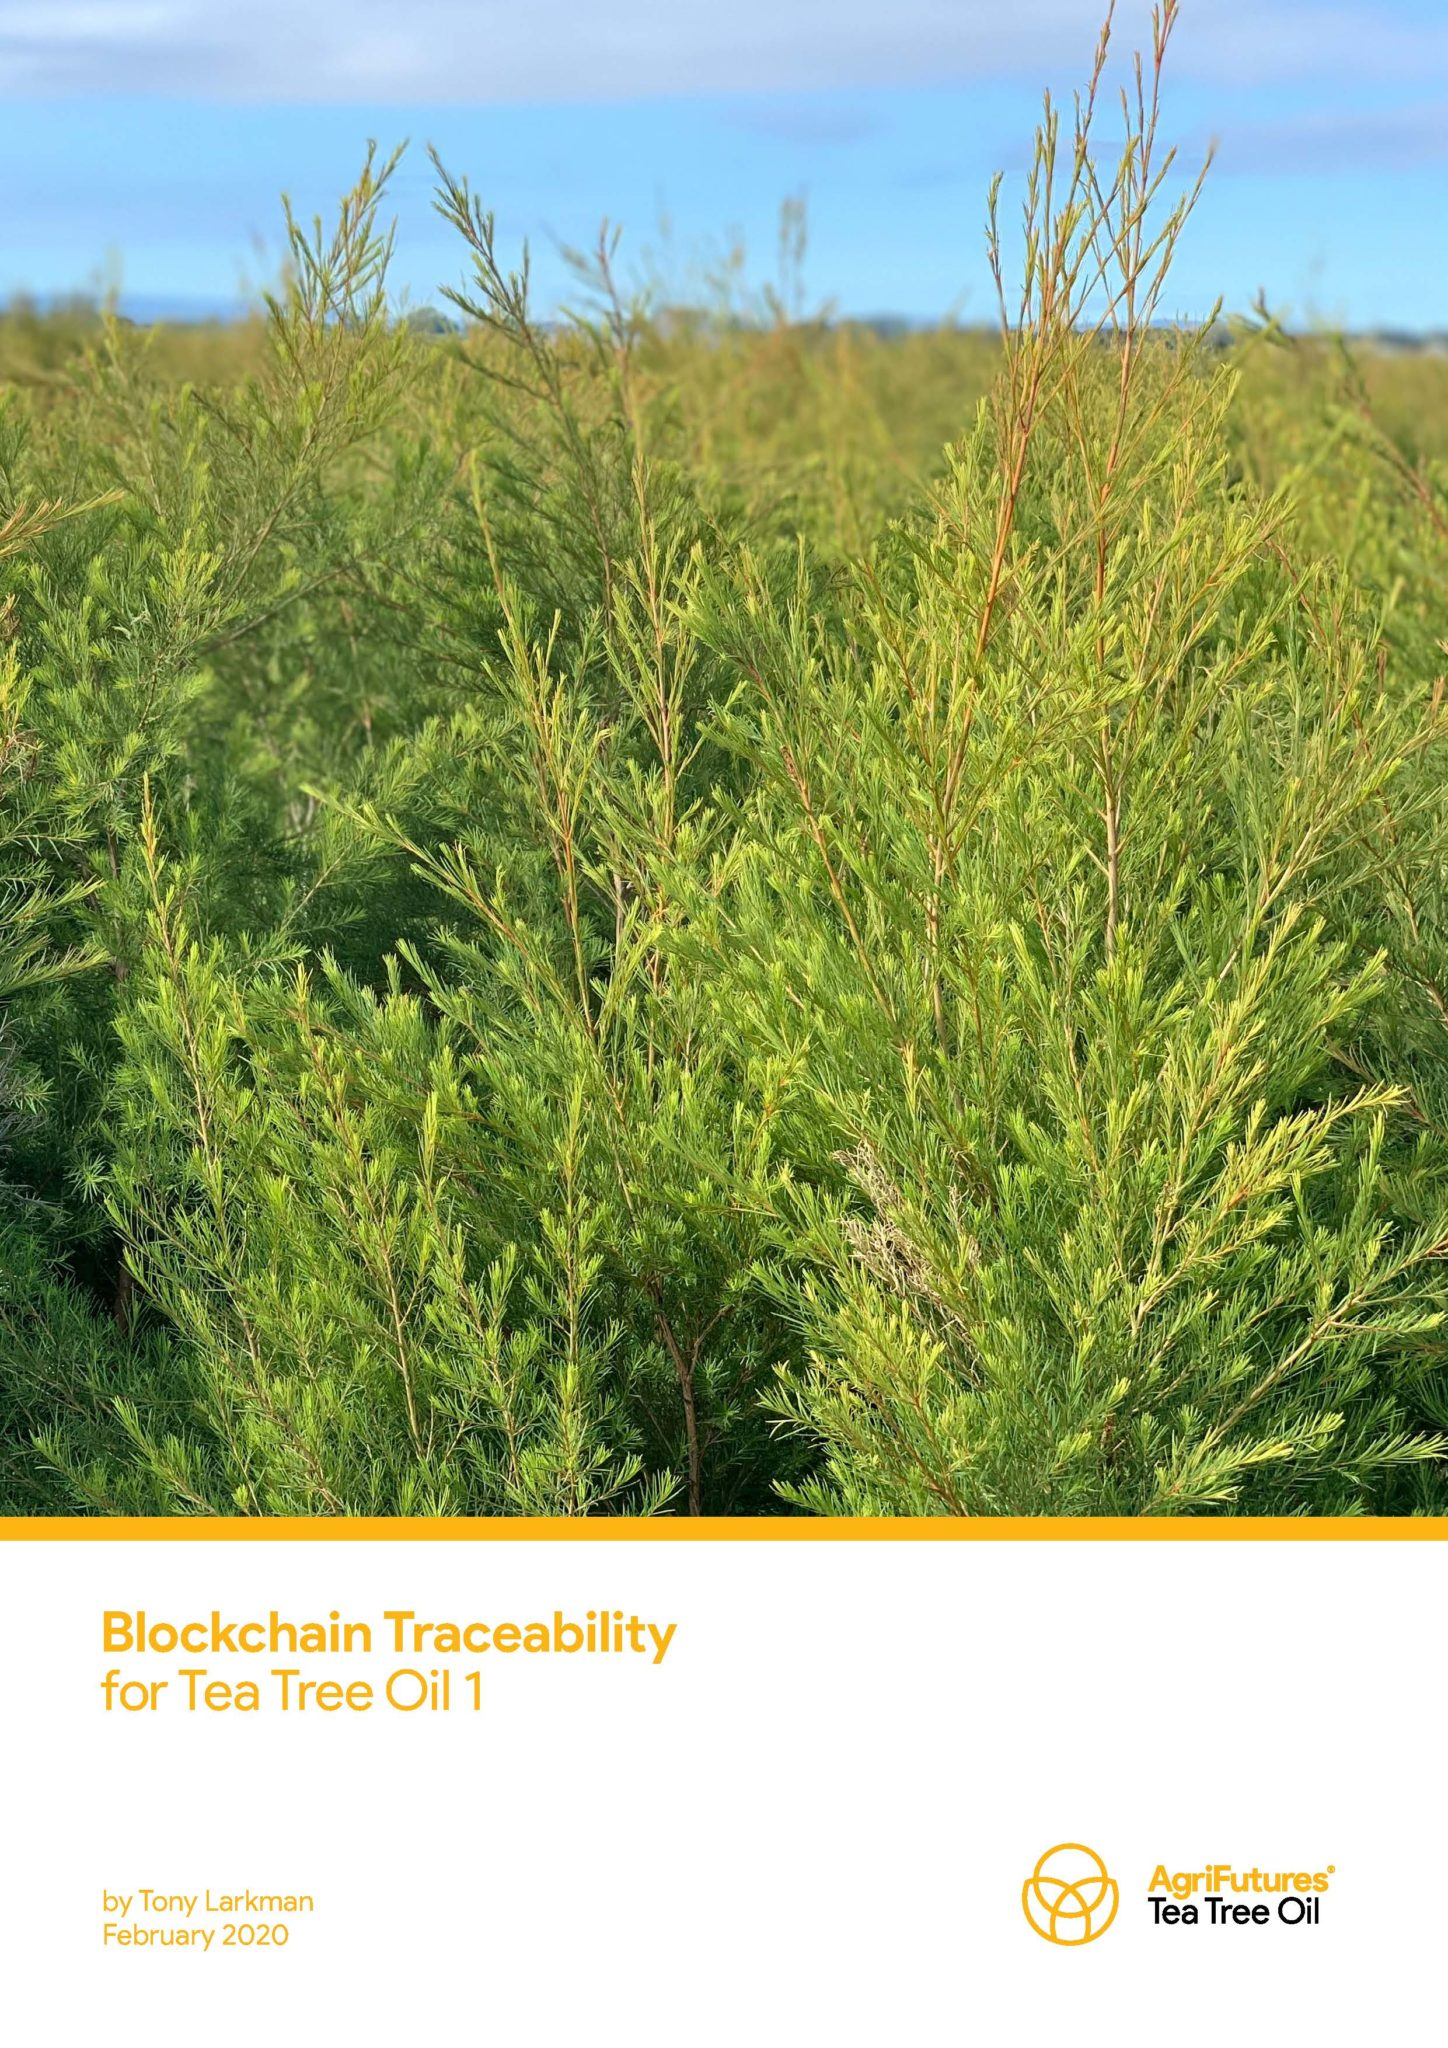 Blockchain Traceability for Tea Tree Oil 1 - image